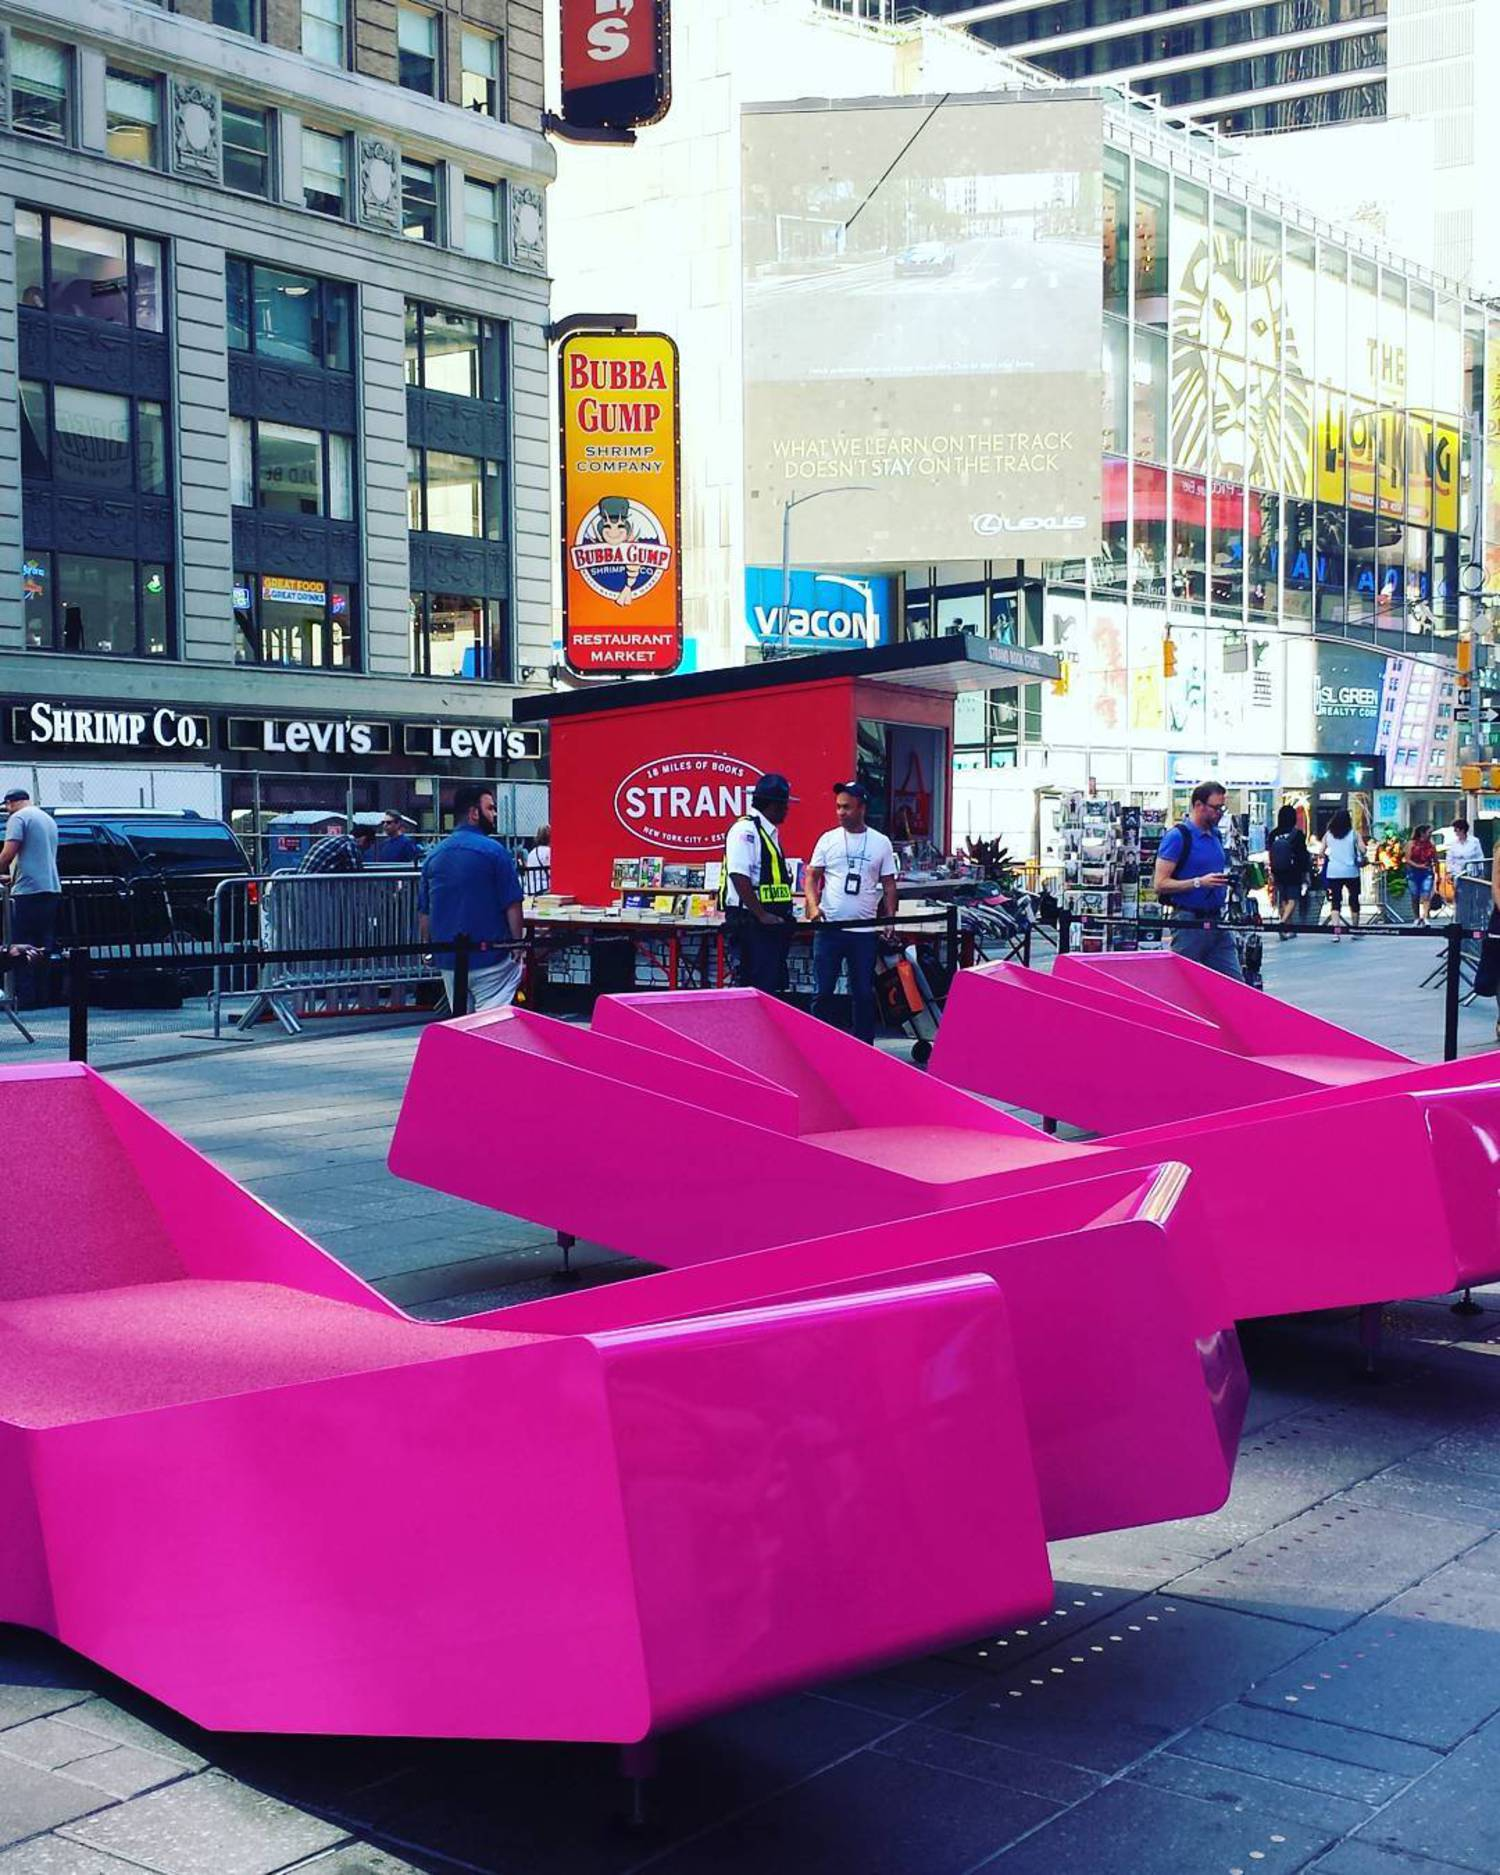 "#jmayerh's ""XXX"" installation unveiled in #NYC Times Square this morning. #TSqXXX"